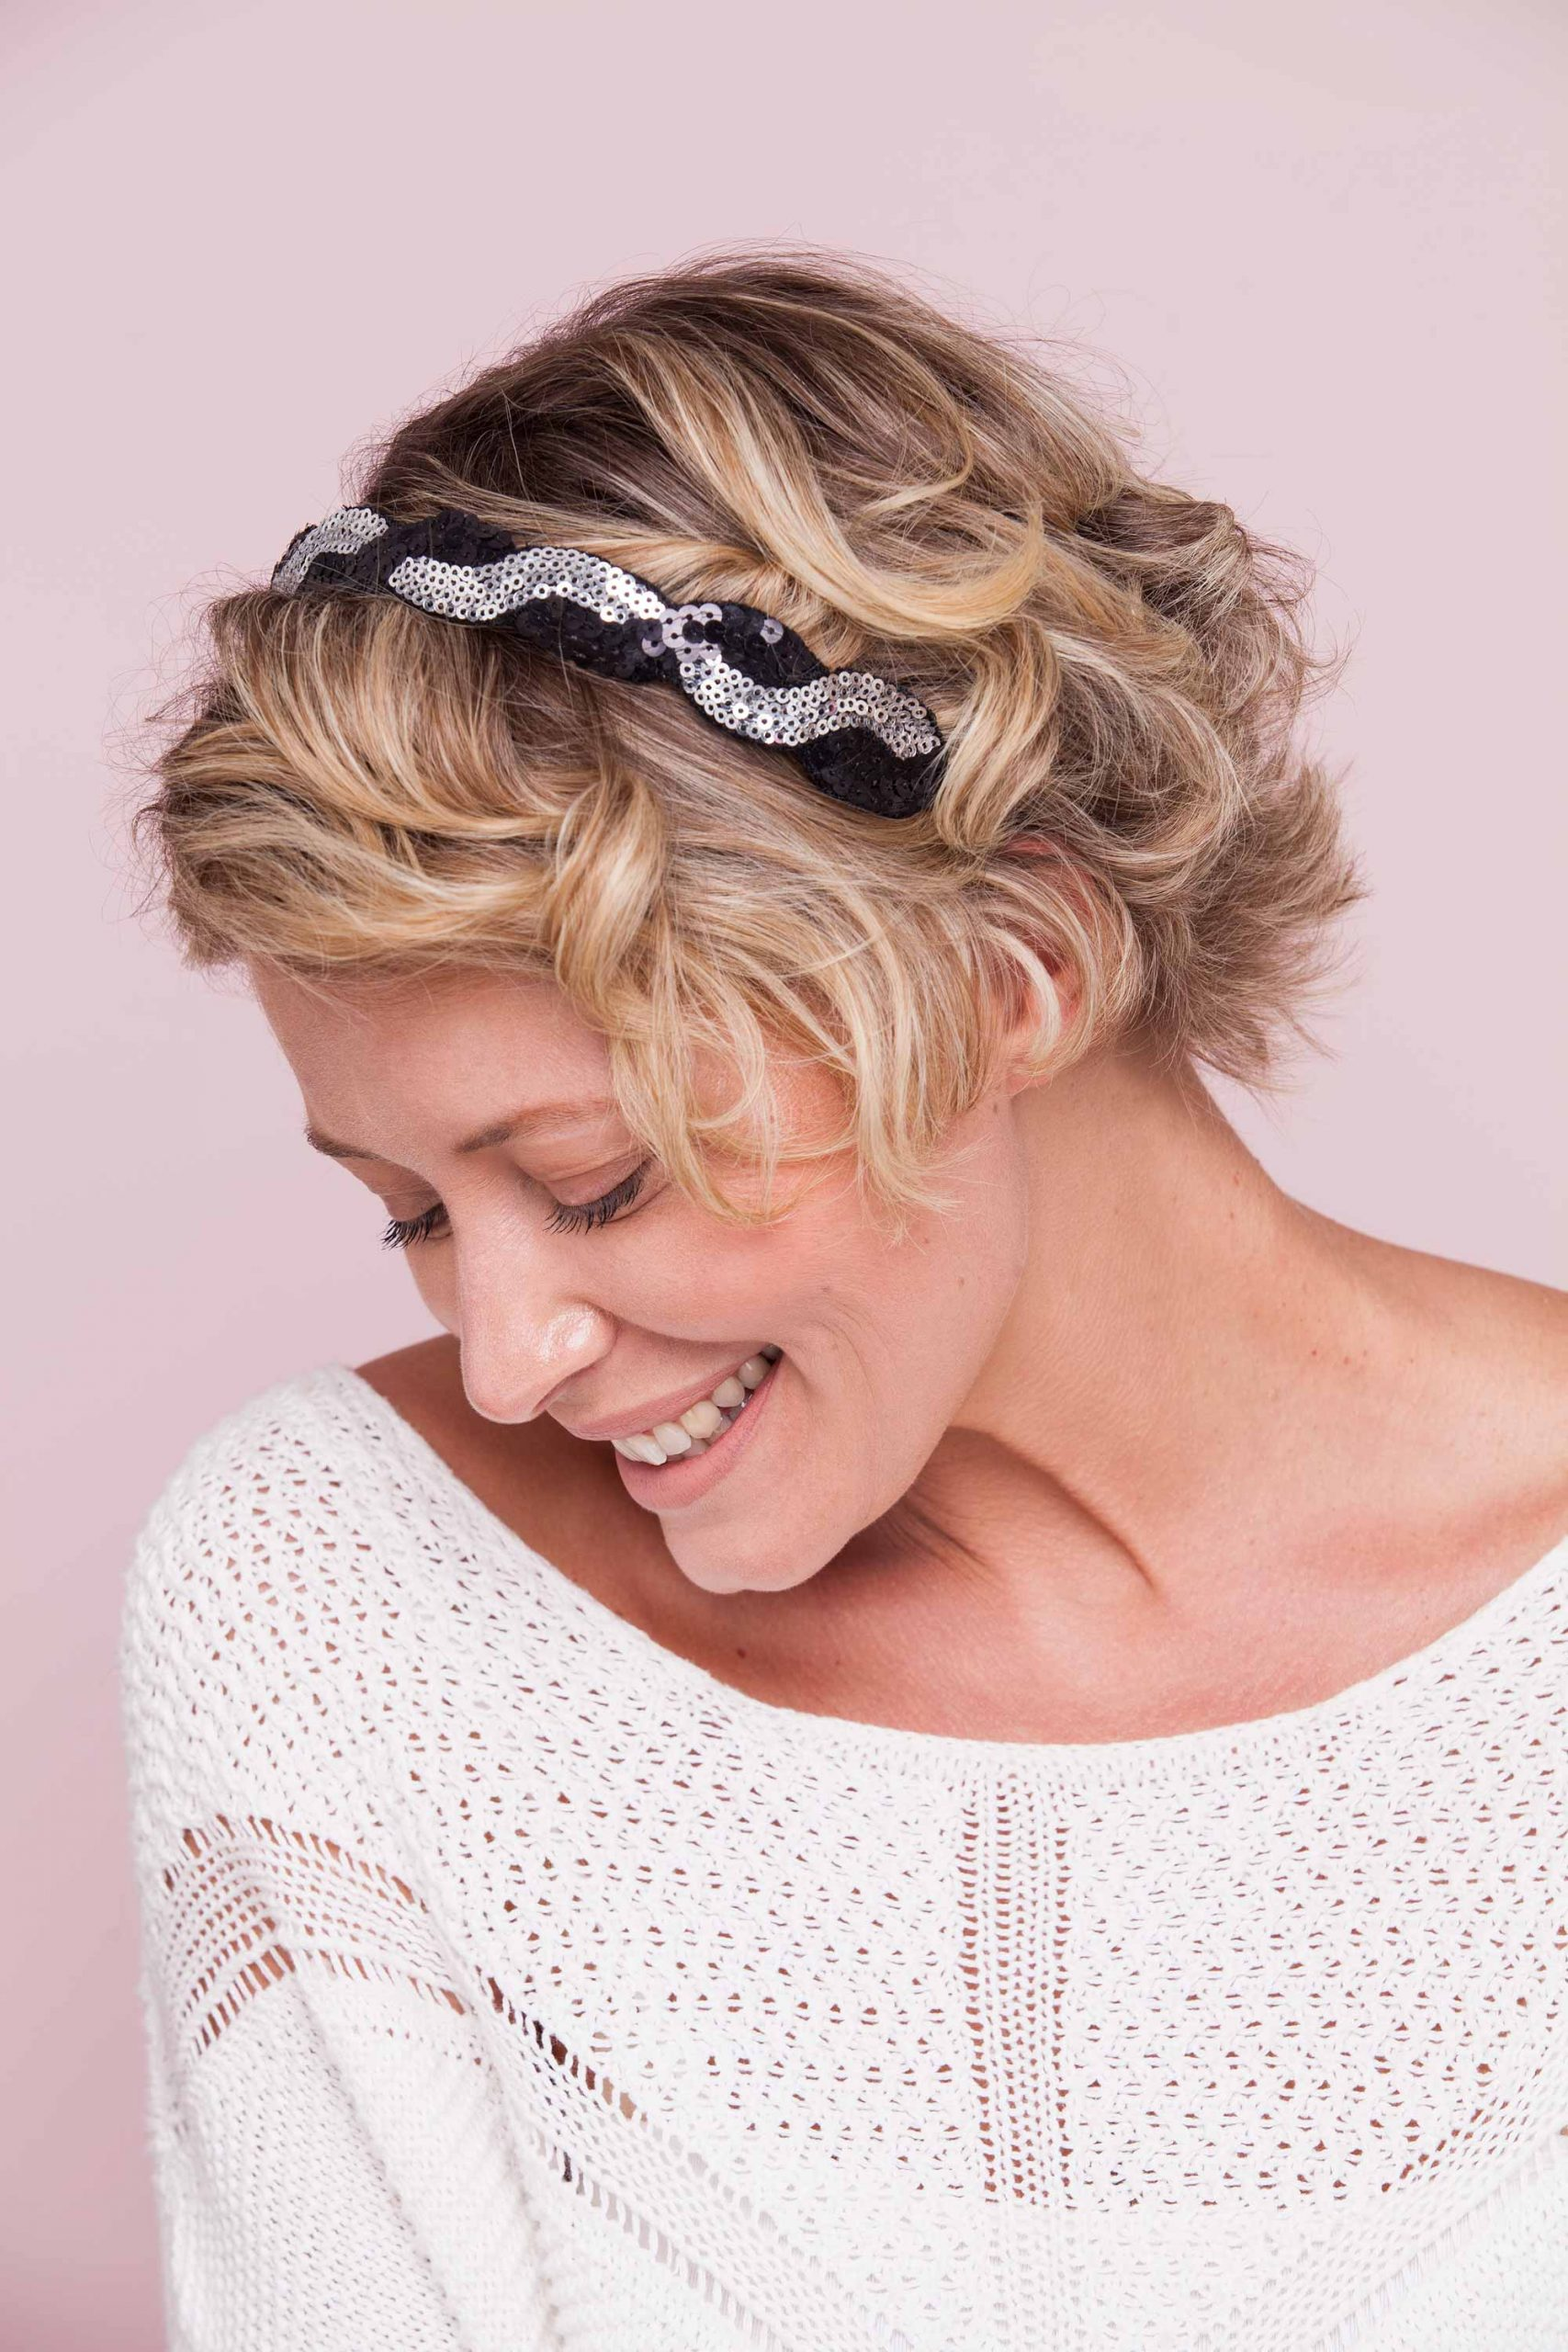 Hairstyles for Short Hair for Wedding Guest   25+